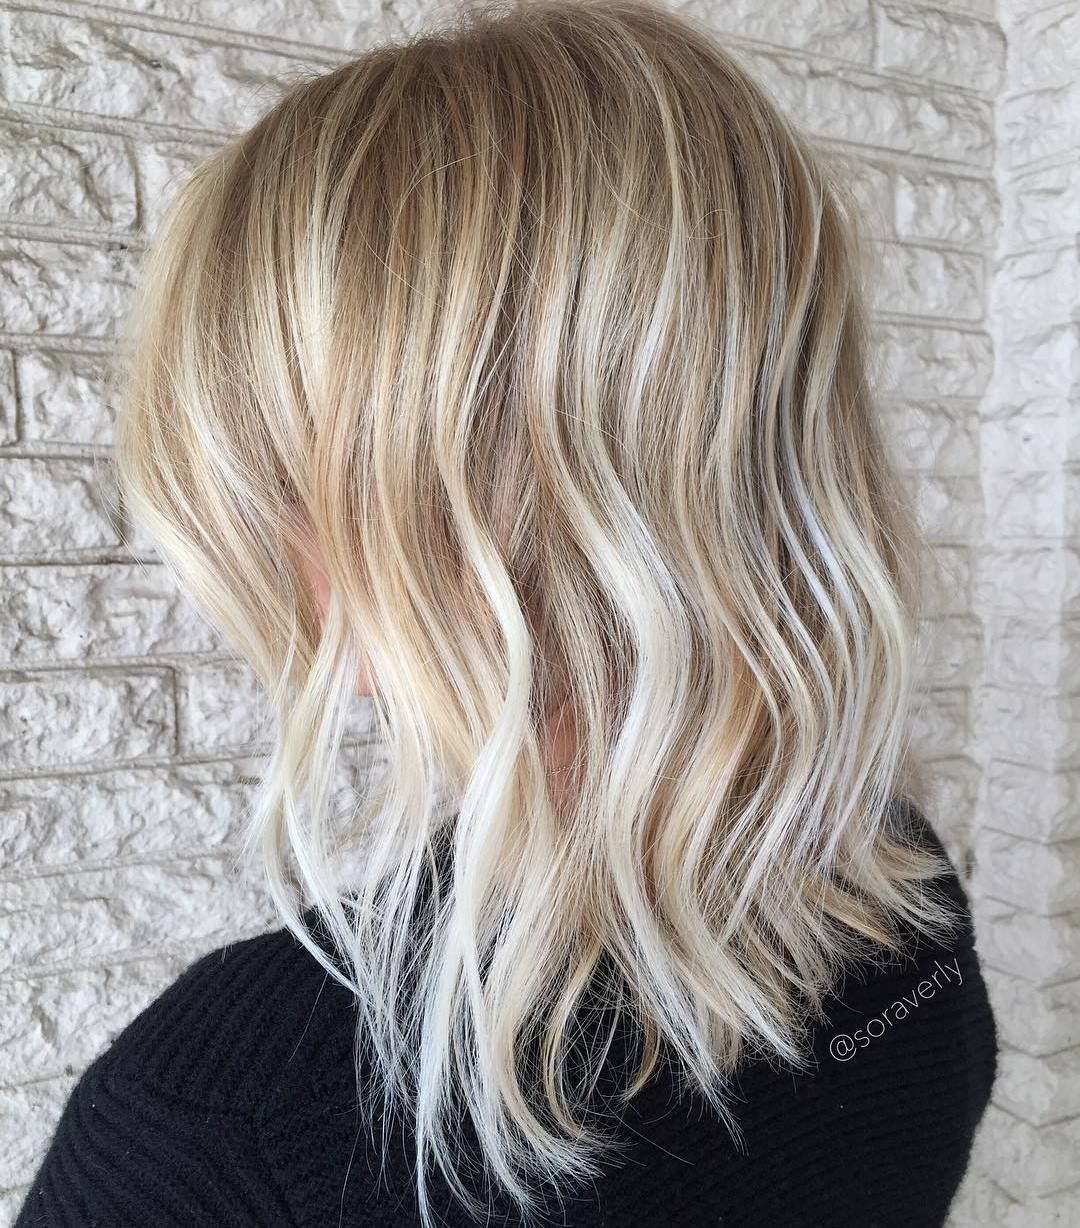 Haircuts Hairstyles 70 Devastatingly Cool Haircuts For Thin Hair Ap Hair Thin Hair